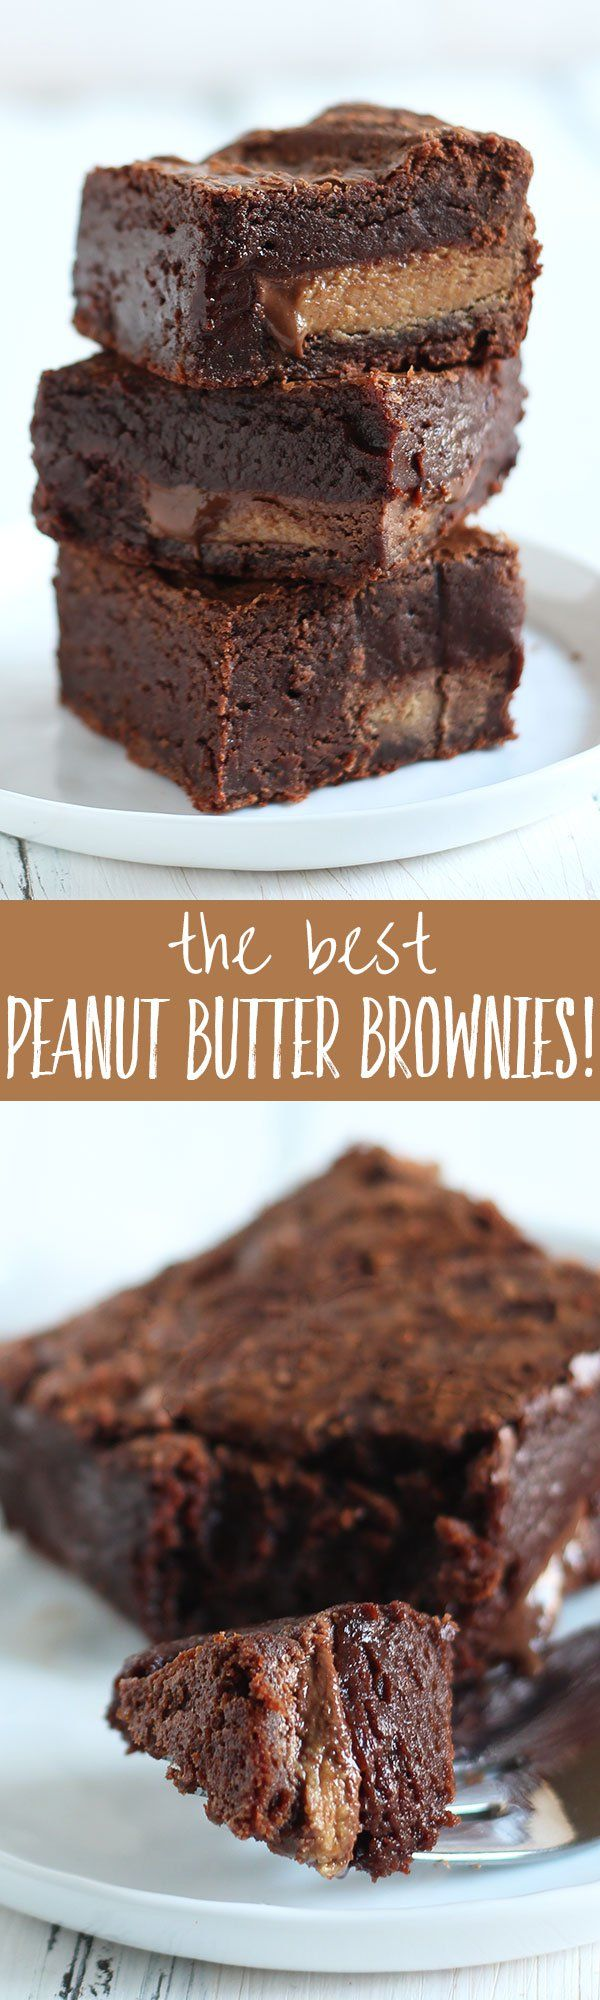 The Best Peanut Butter Brownies from handletheheat.com